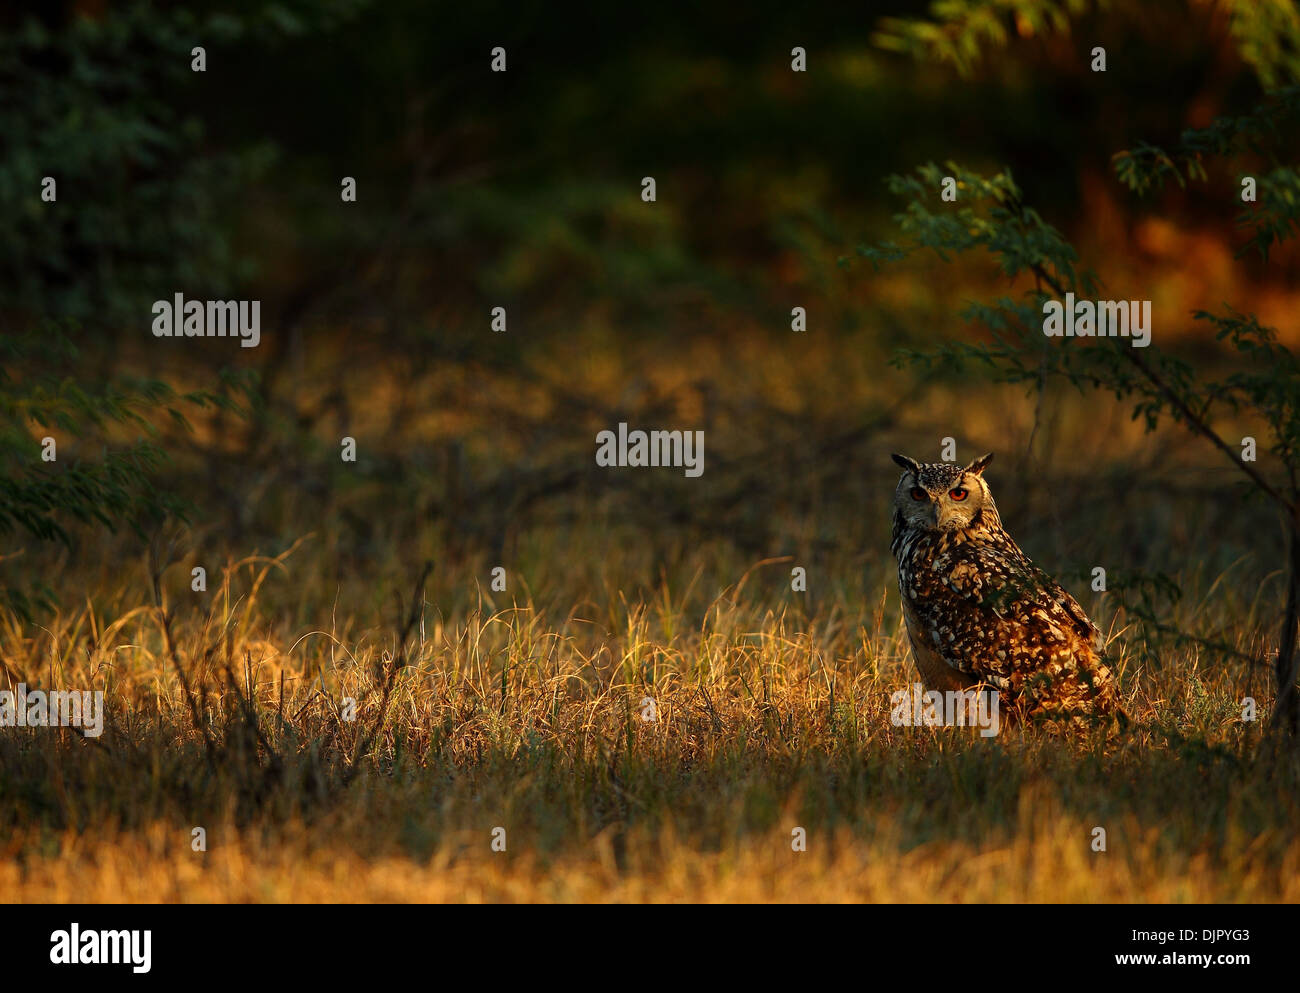 Eurasian Eagle Owl or Indian Great Horned Owl in Rann of Kutch in Gujarat - Stock Image